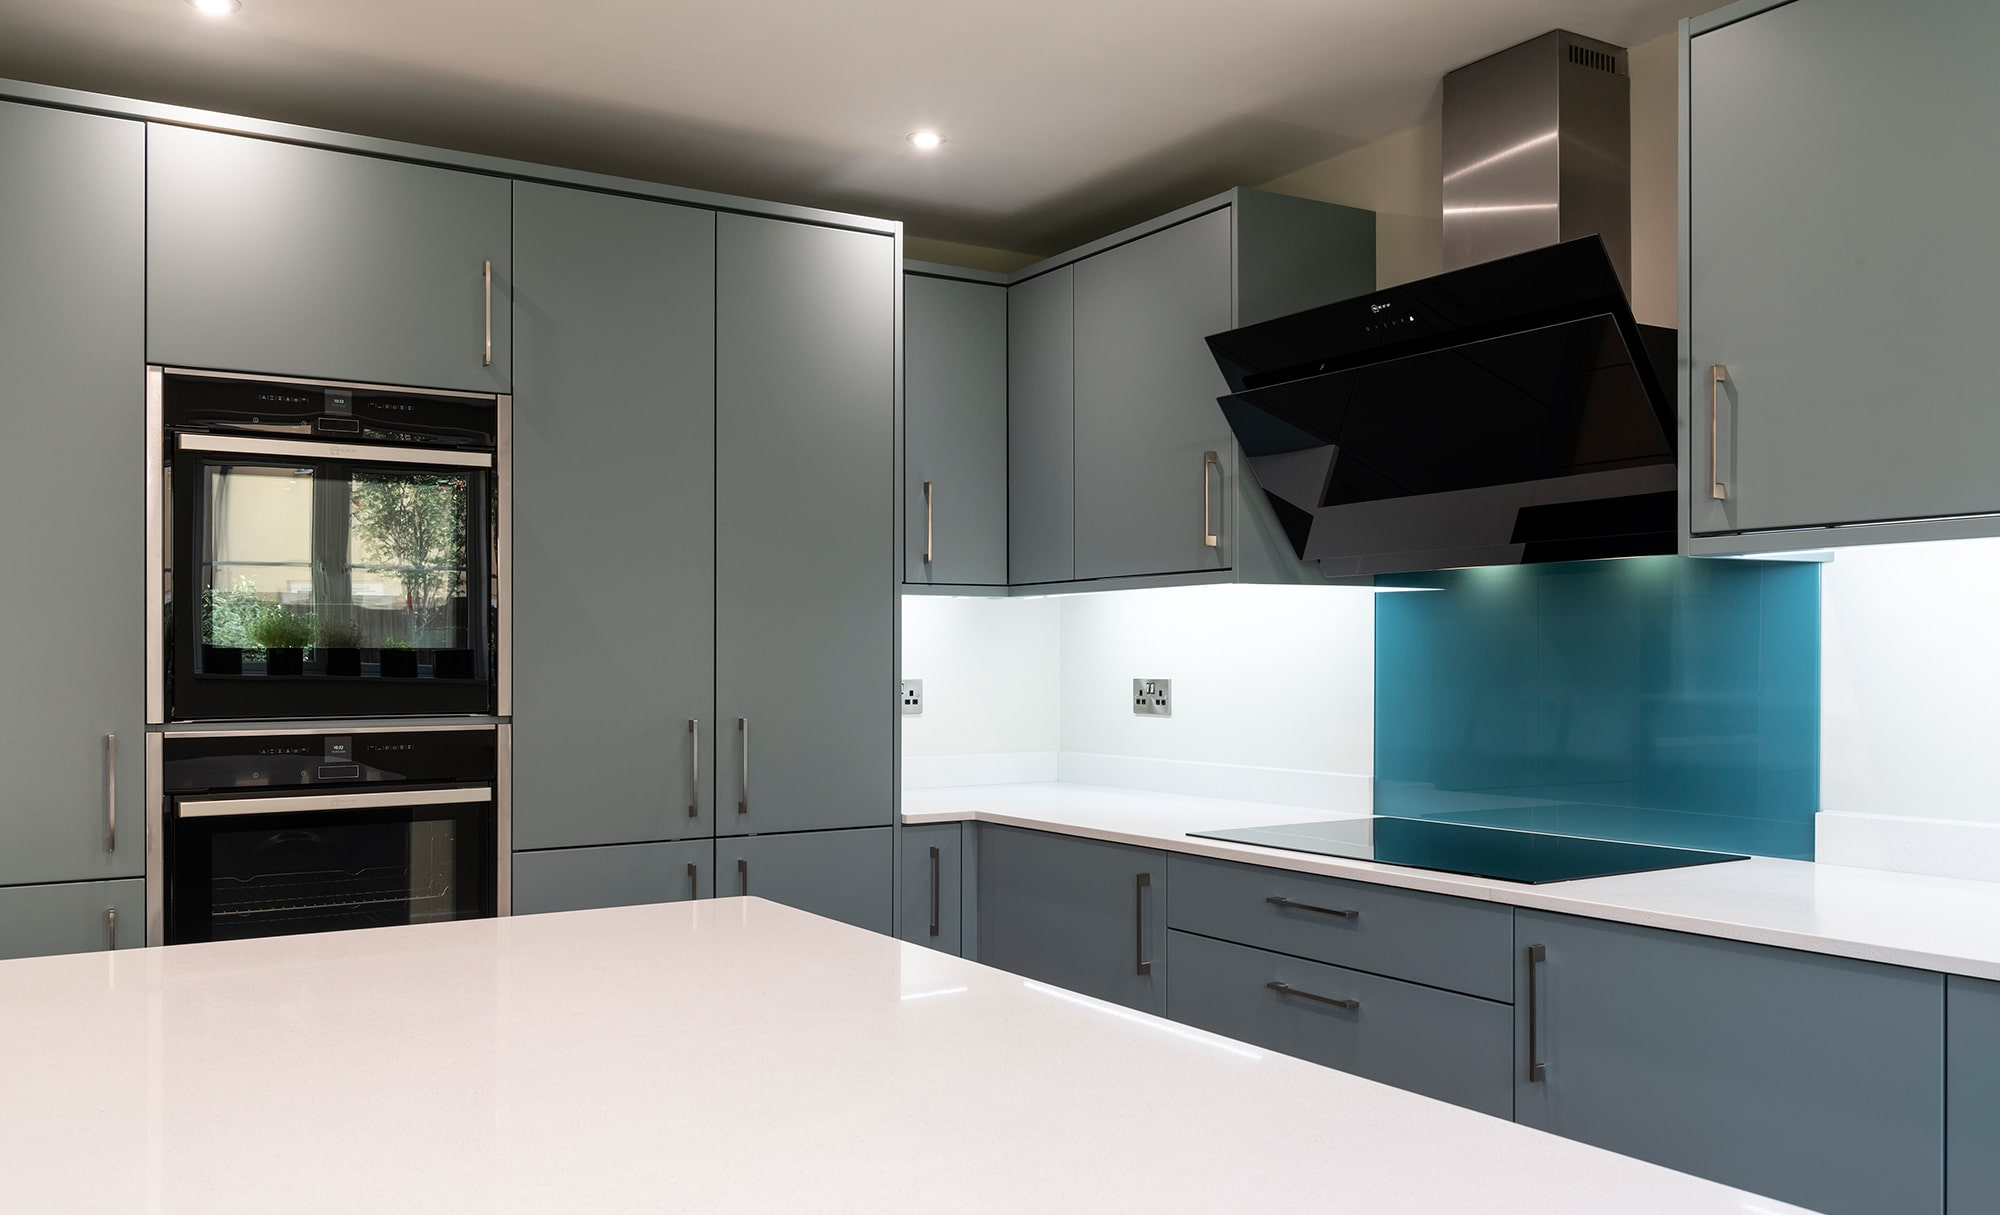 Portishead Kitchens Strada Matte Light Teal & Viridian island for a home in Portishead